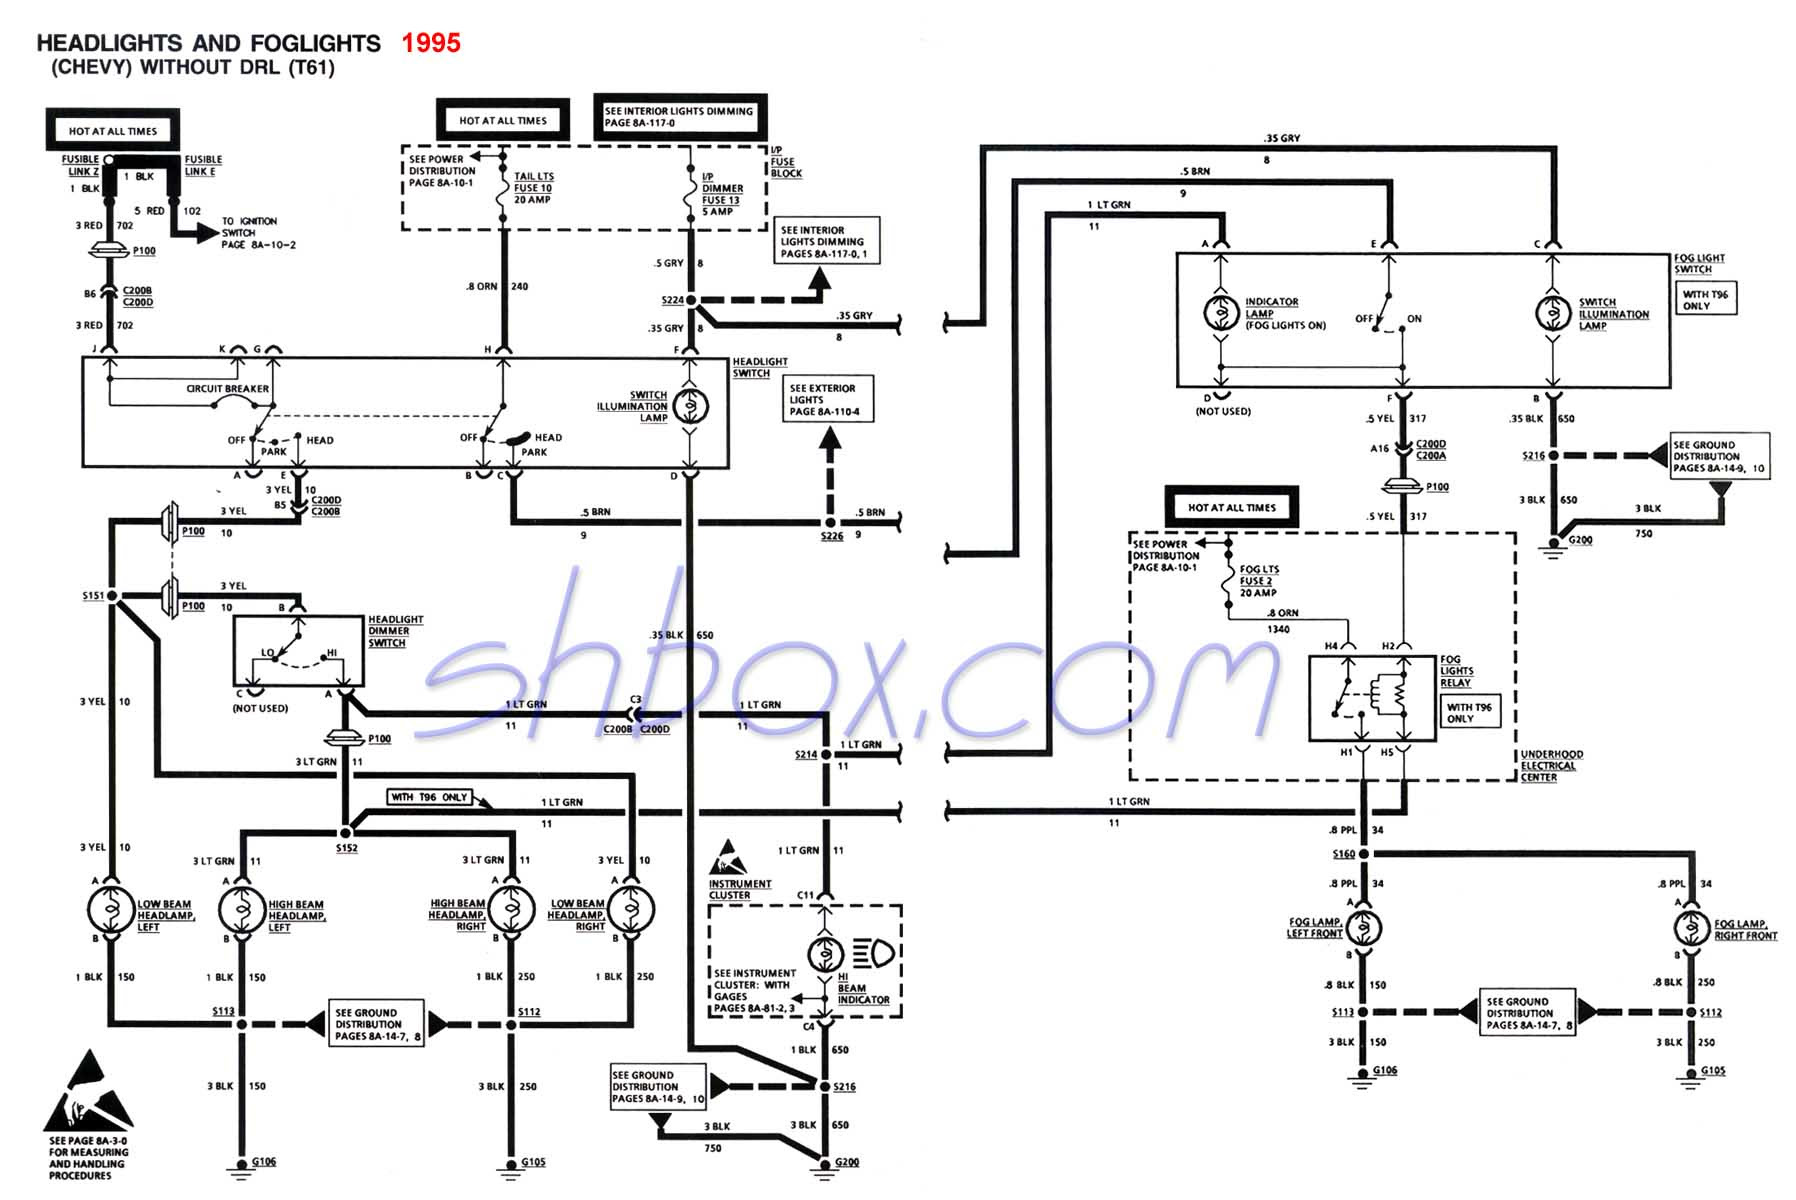 1994 Pontiac Firebird Wiring Diagram Wiring Diagram Browse A Browse A Cfcarsnoleggio It